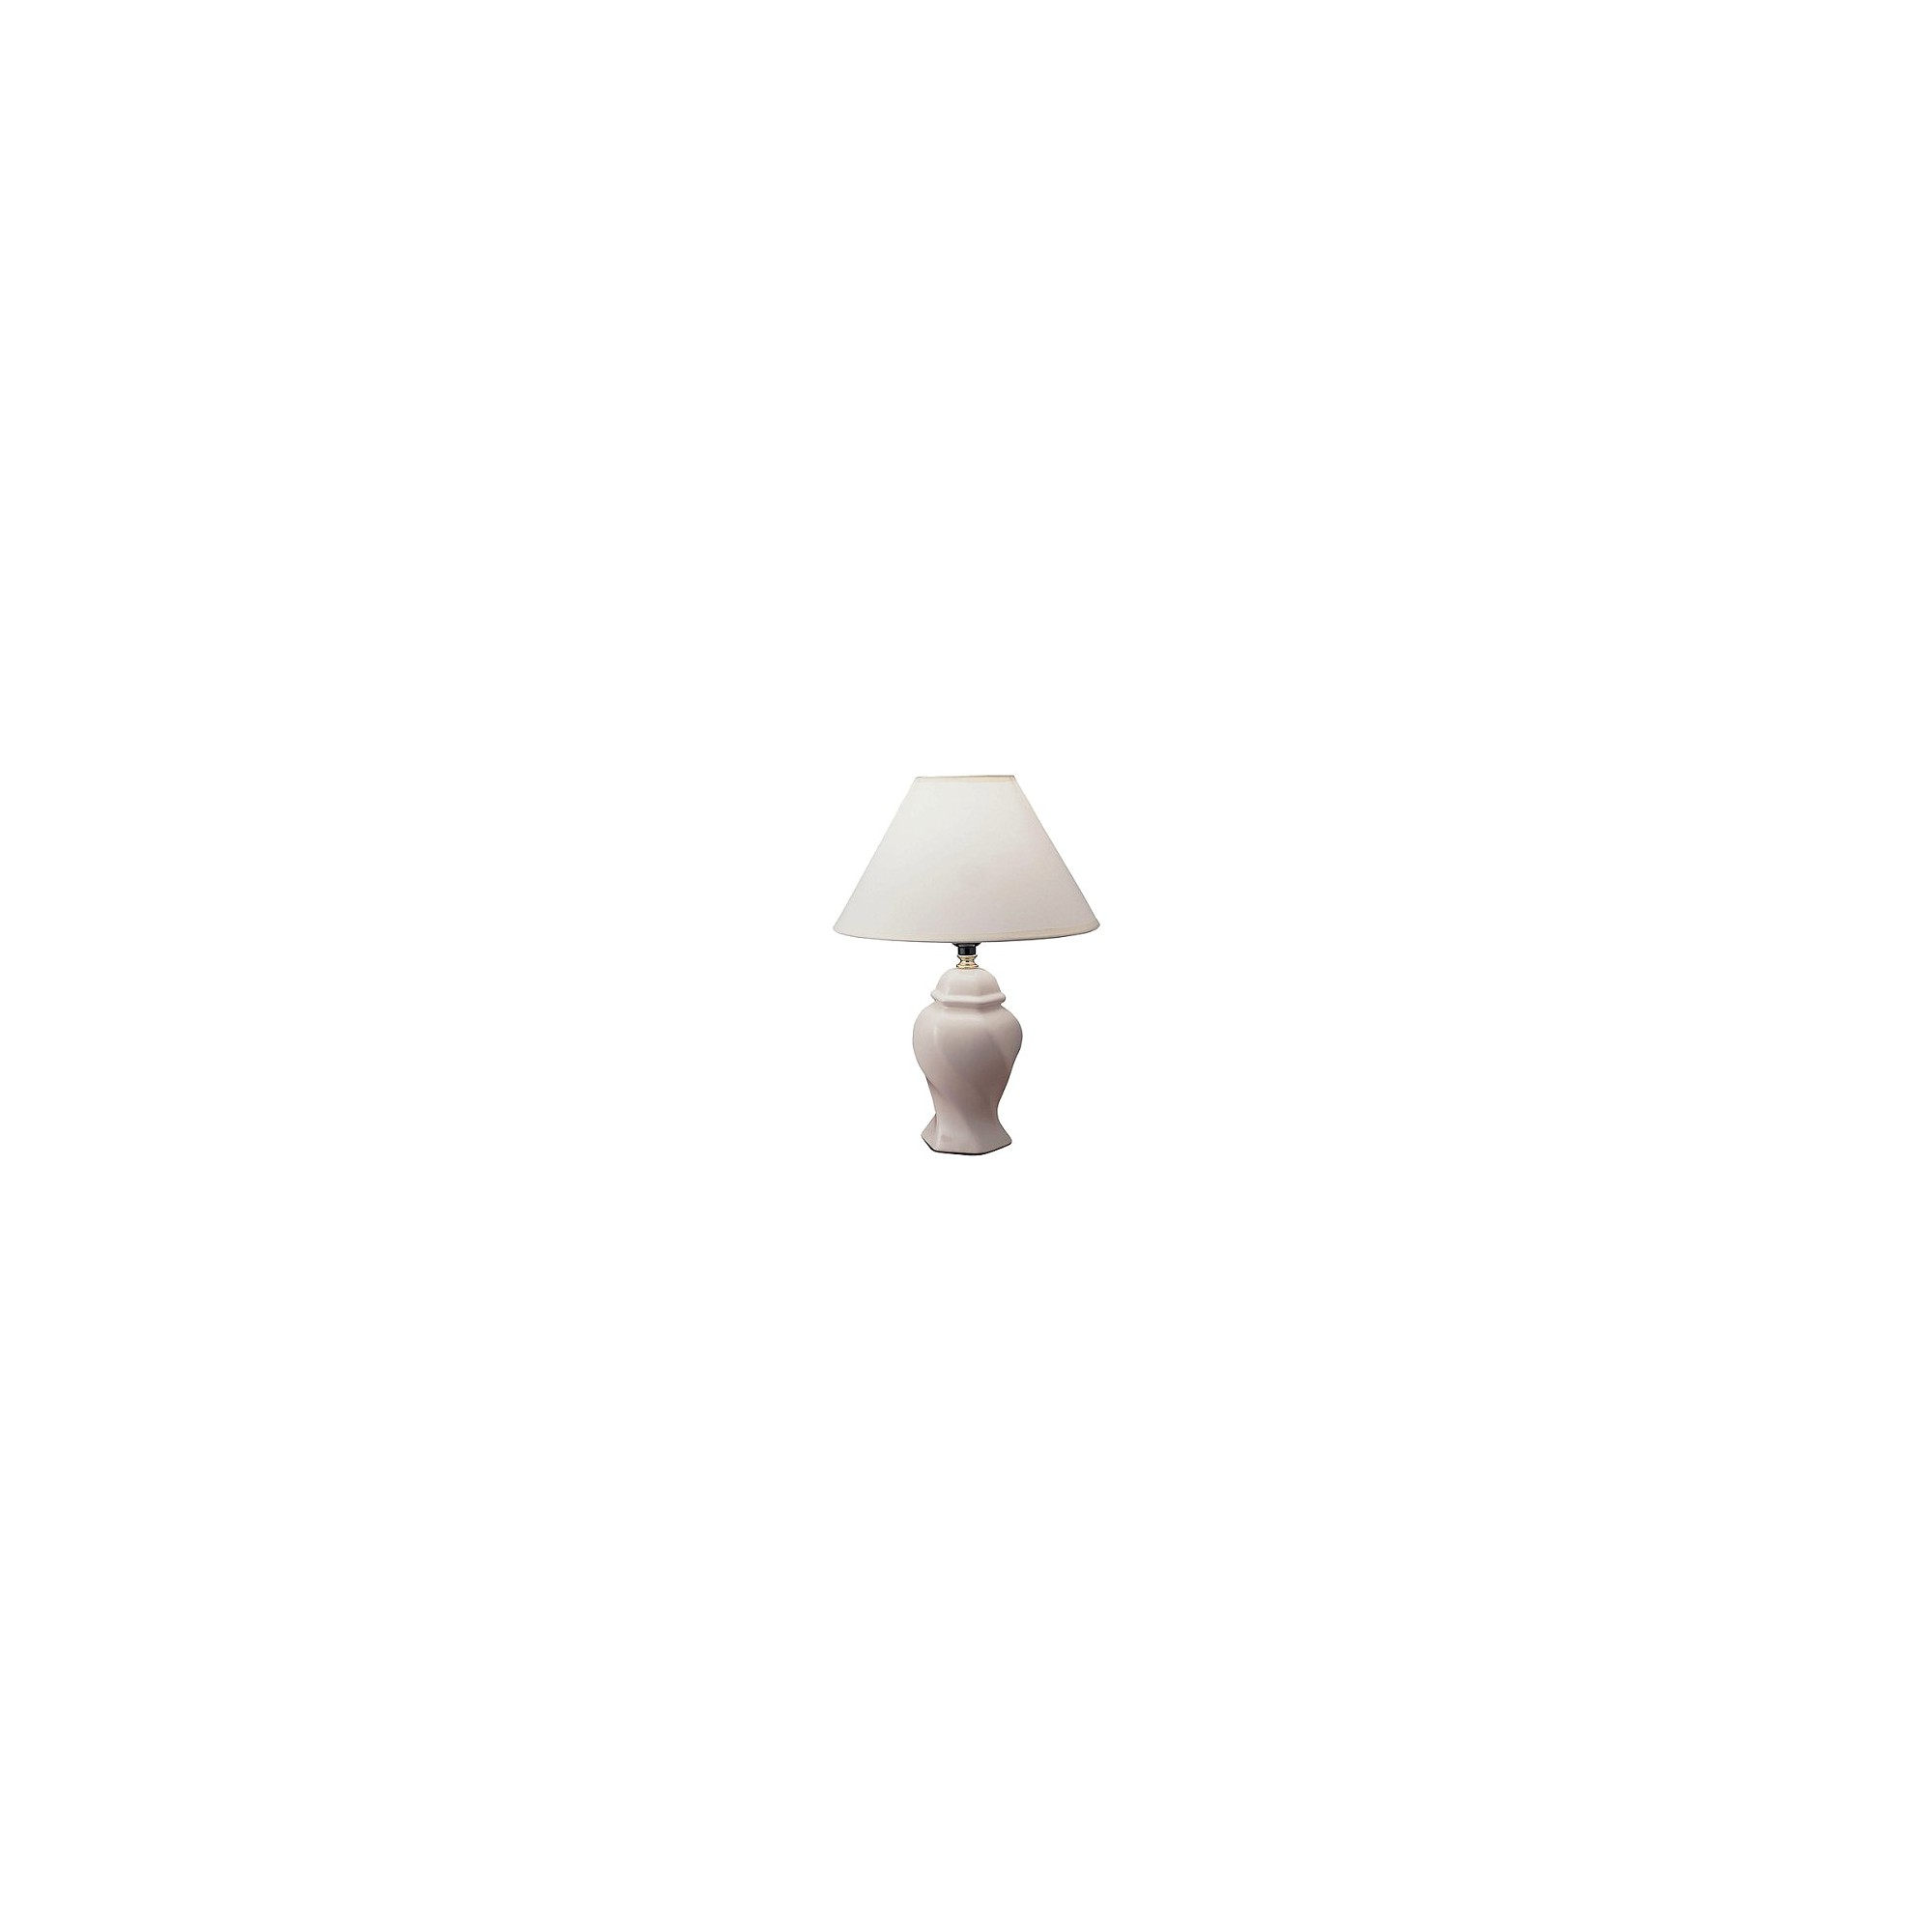 Ceramic Table Lamp - Ivory (Lamp Only)